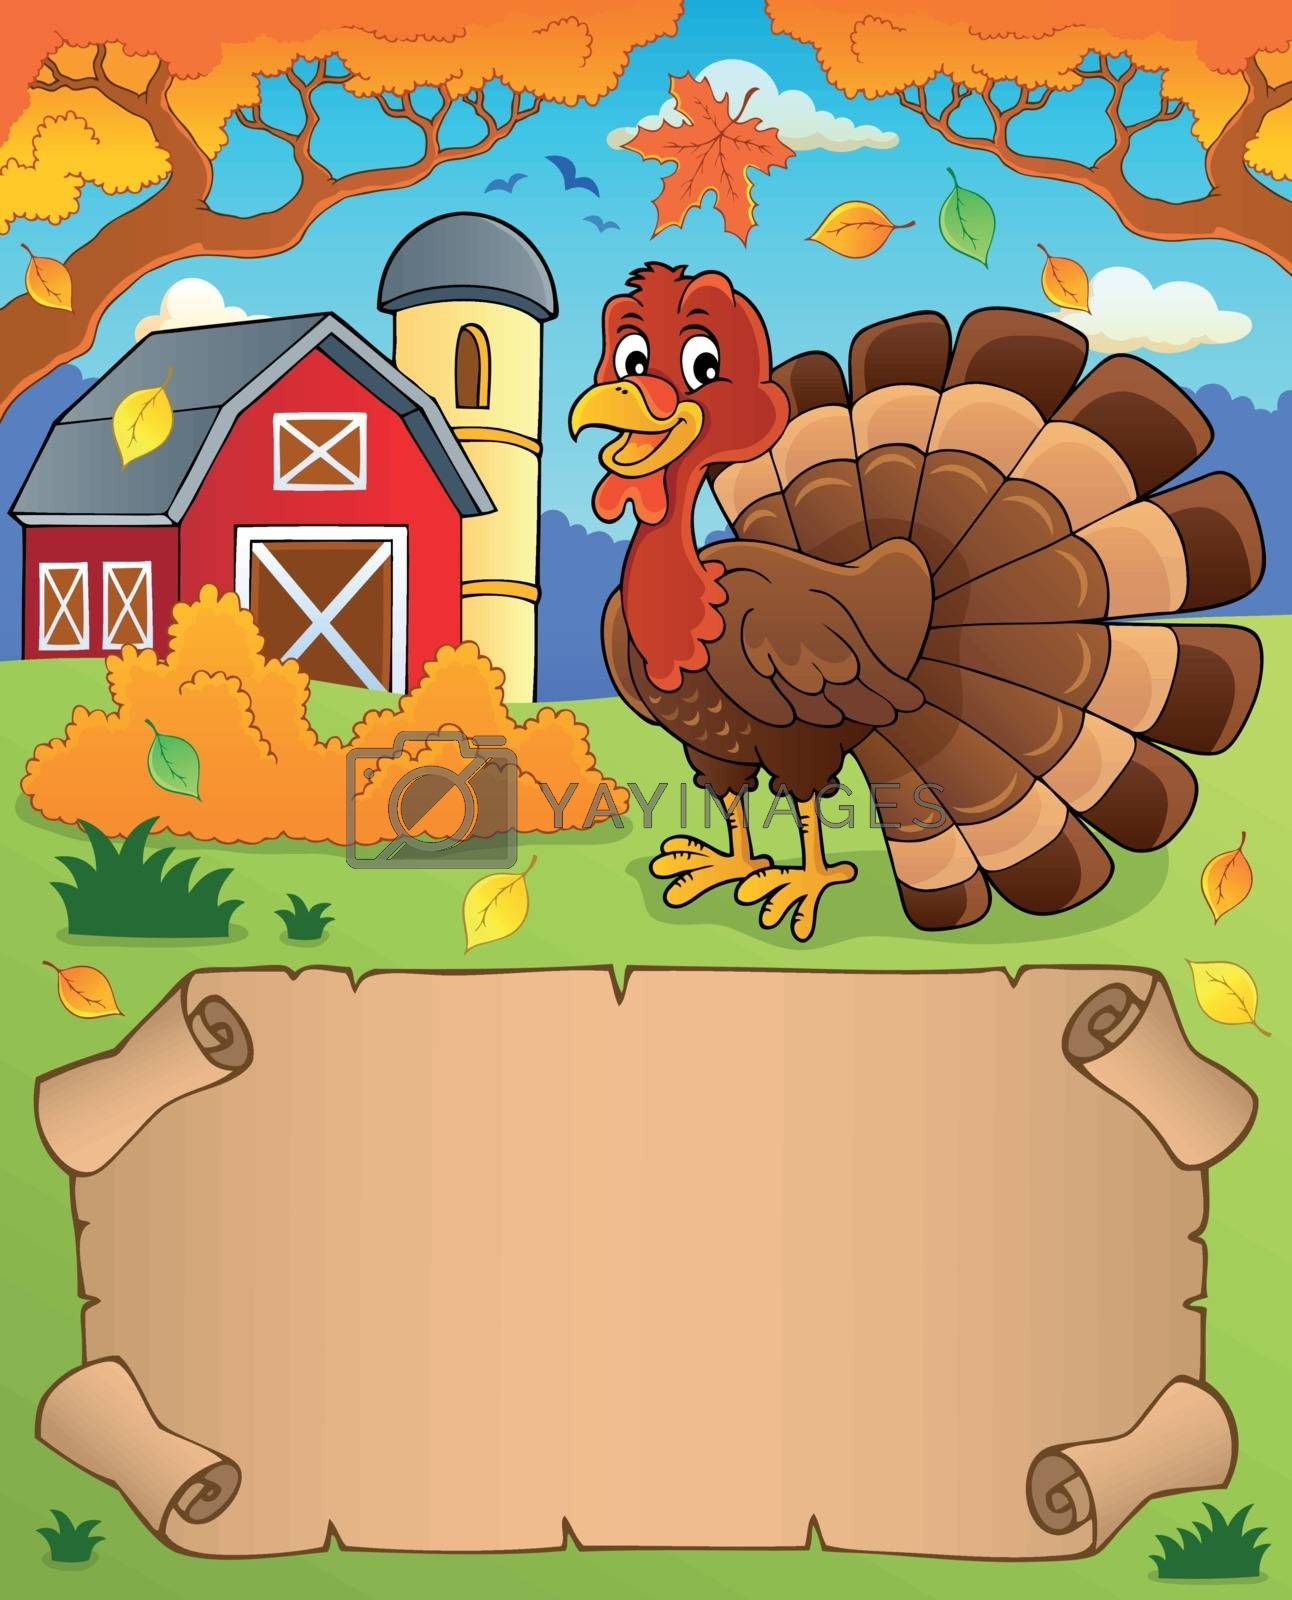 Small parchment and turkey bird 4 - eps10 vector illustration.